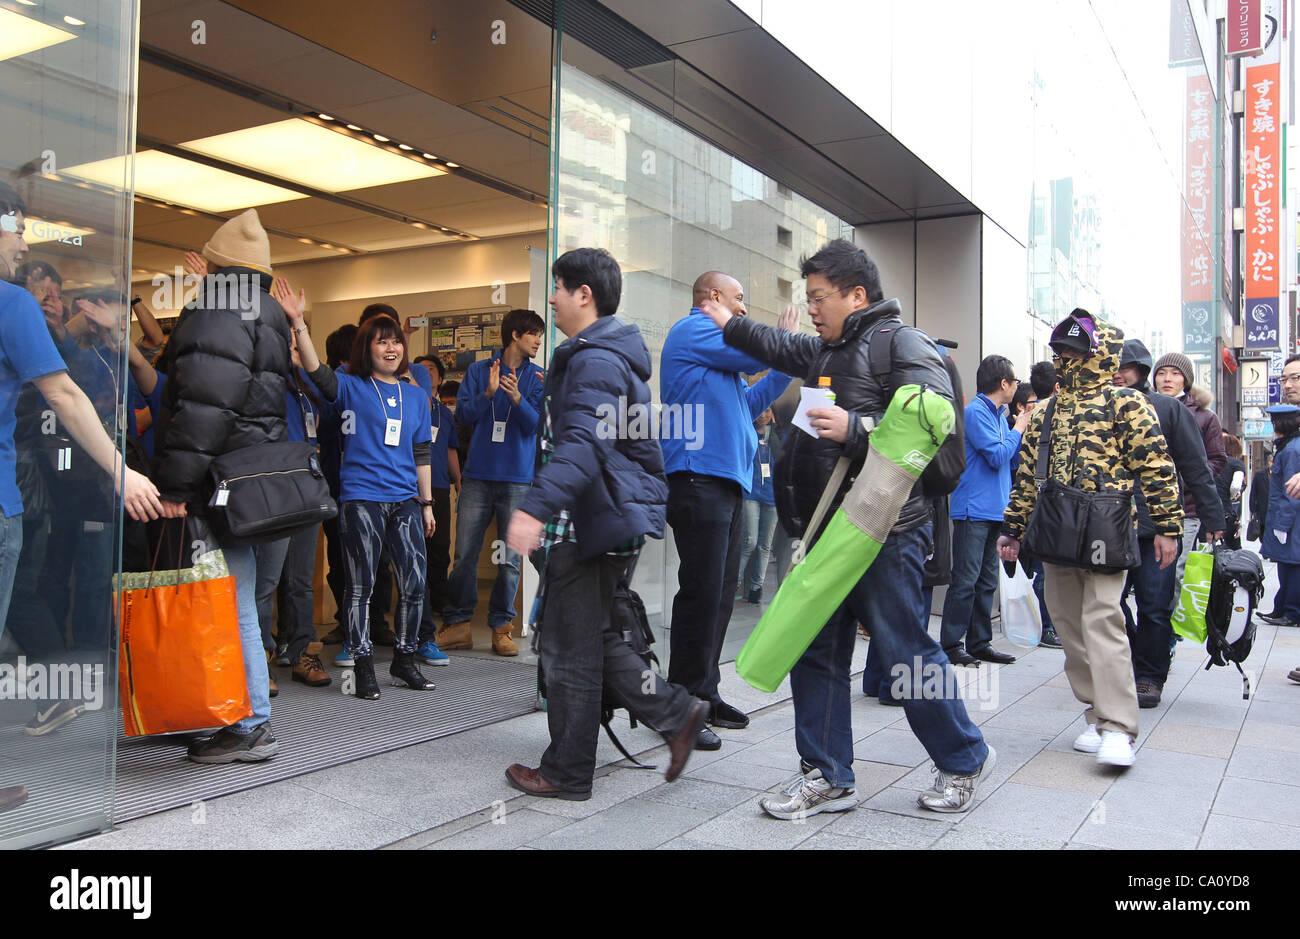 March 16, 2012 - Tokyo, Japan - Customers goes into Apple Ginza